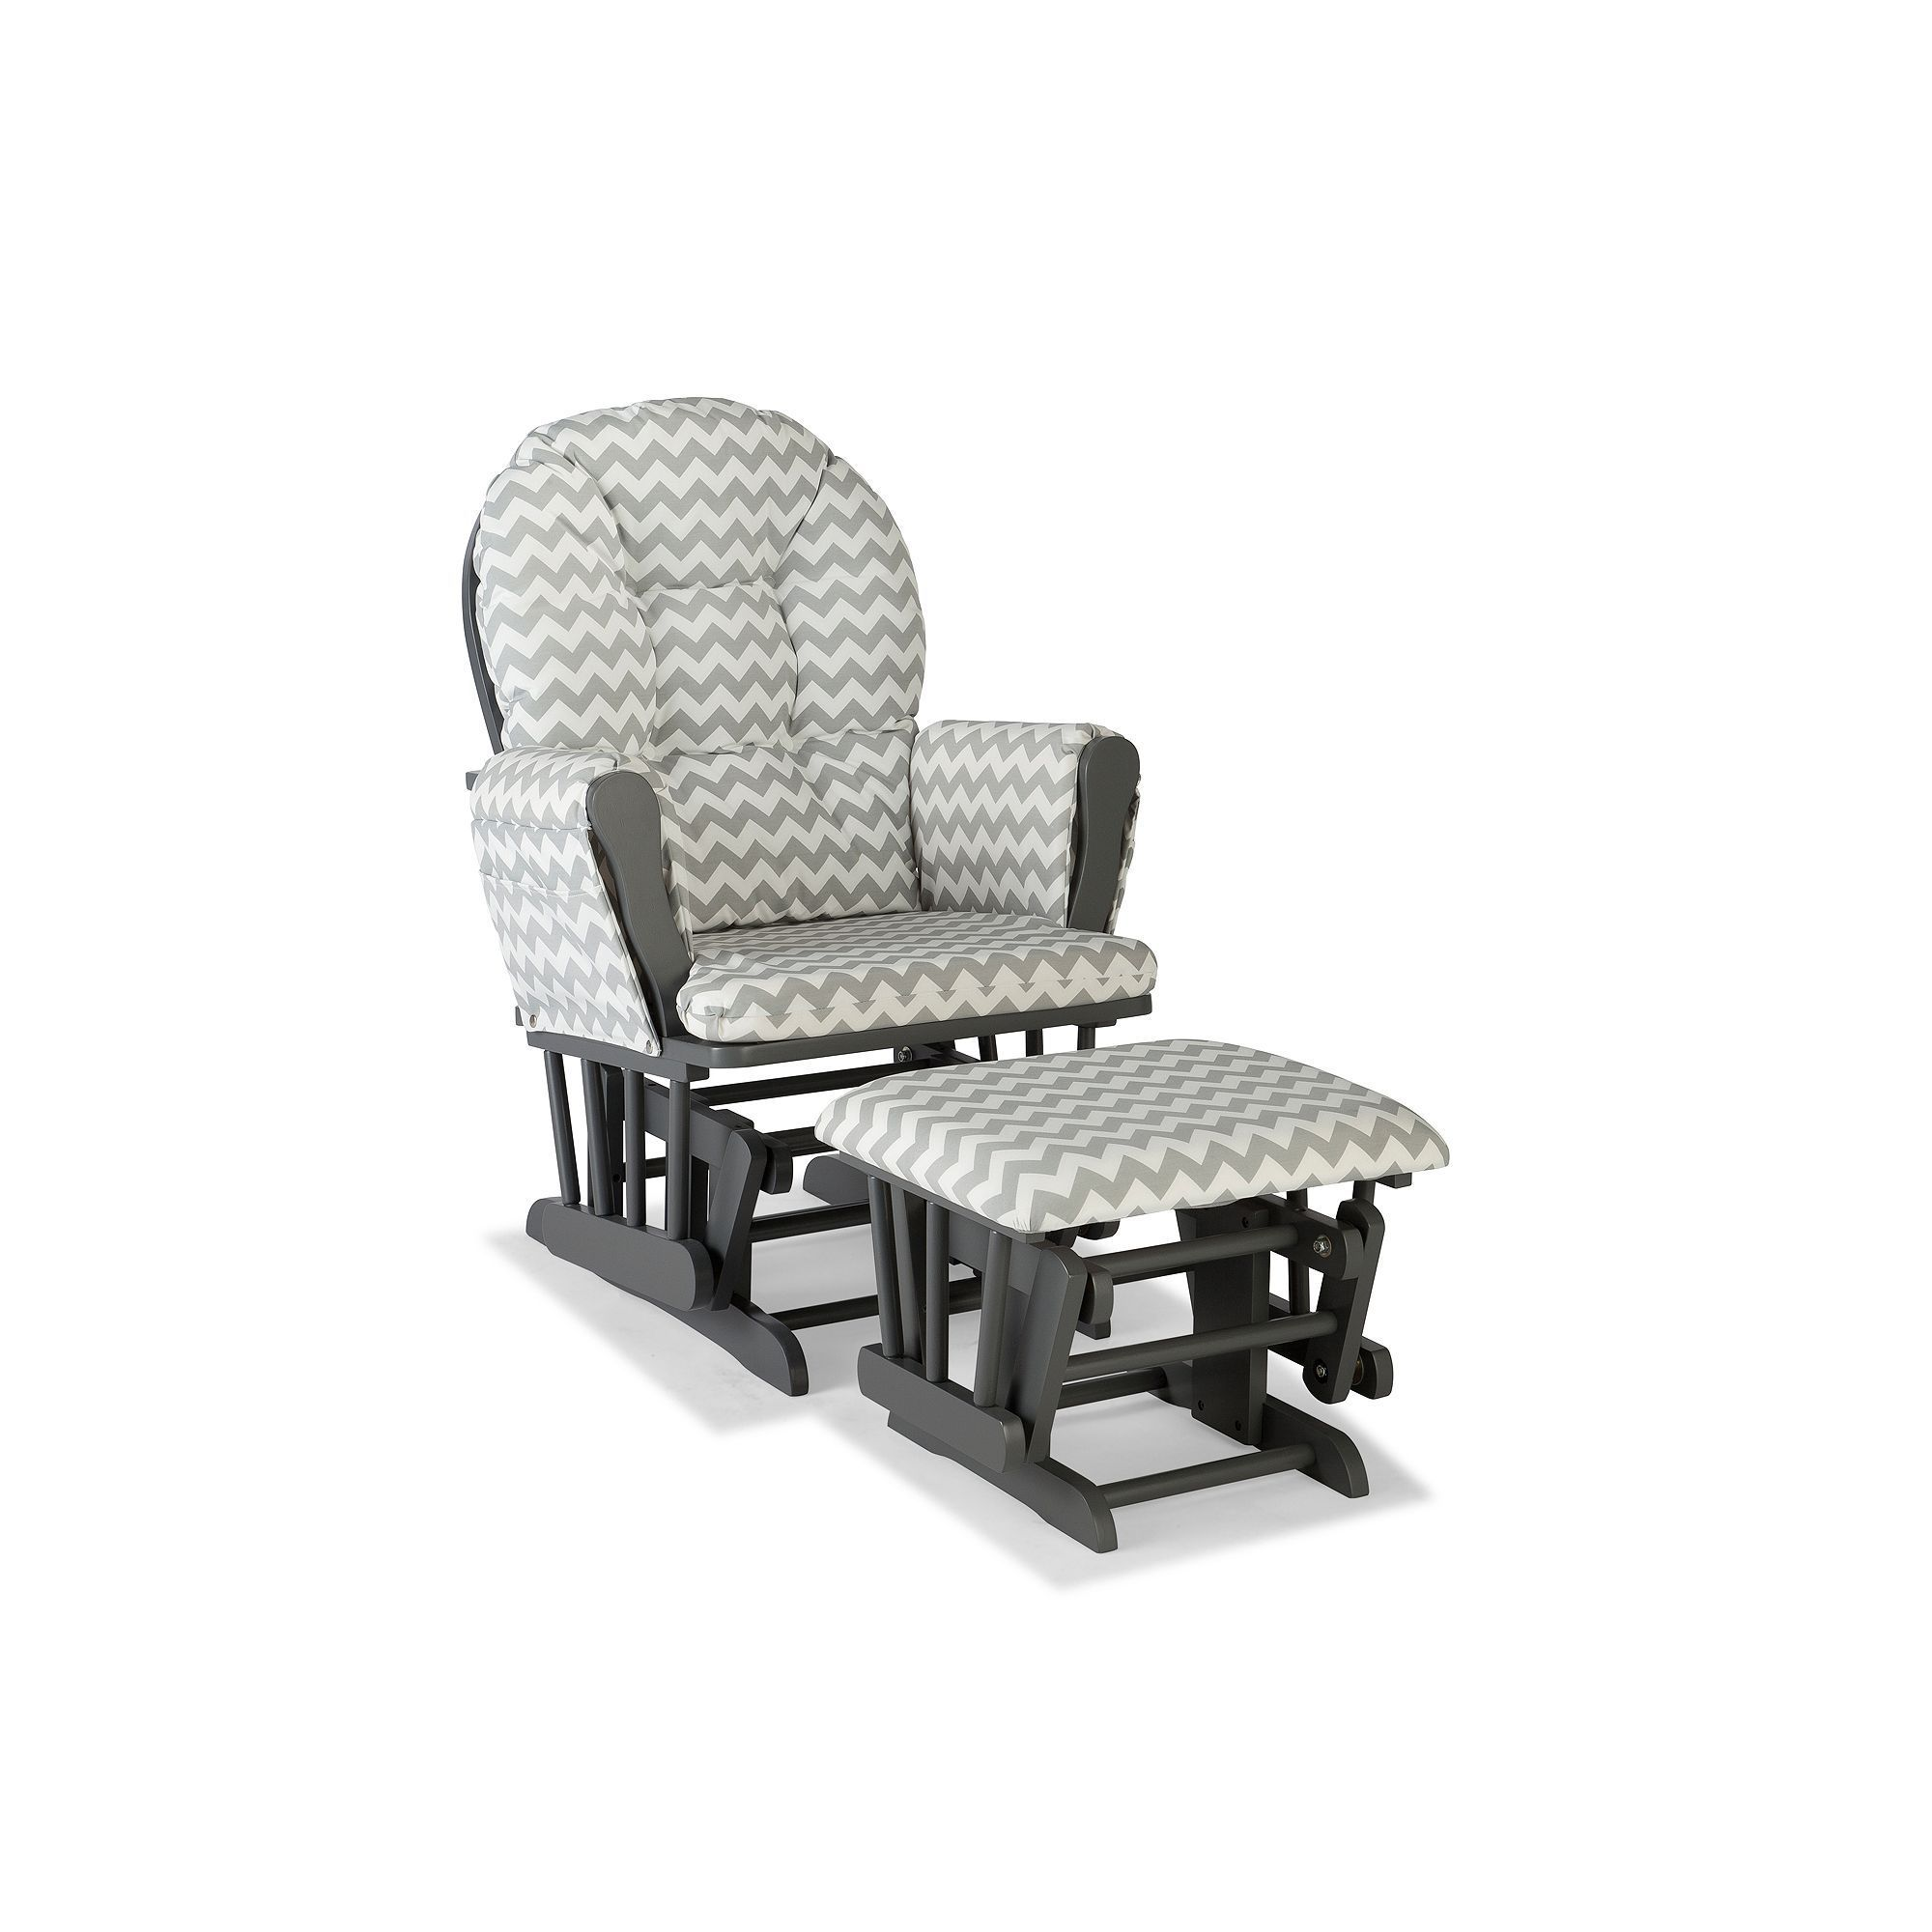 Stork Craft Chevron Hoop Custom Glider Chair And Ottoman Set, Grey, Durable